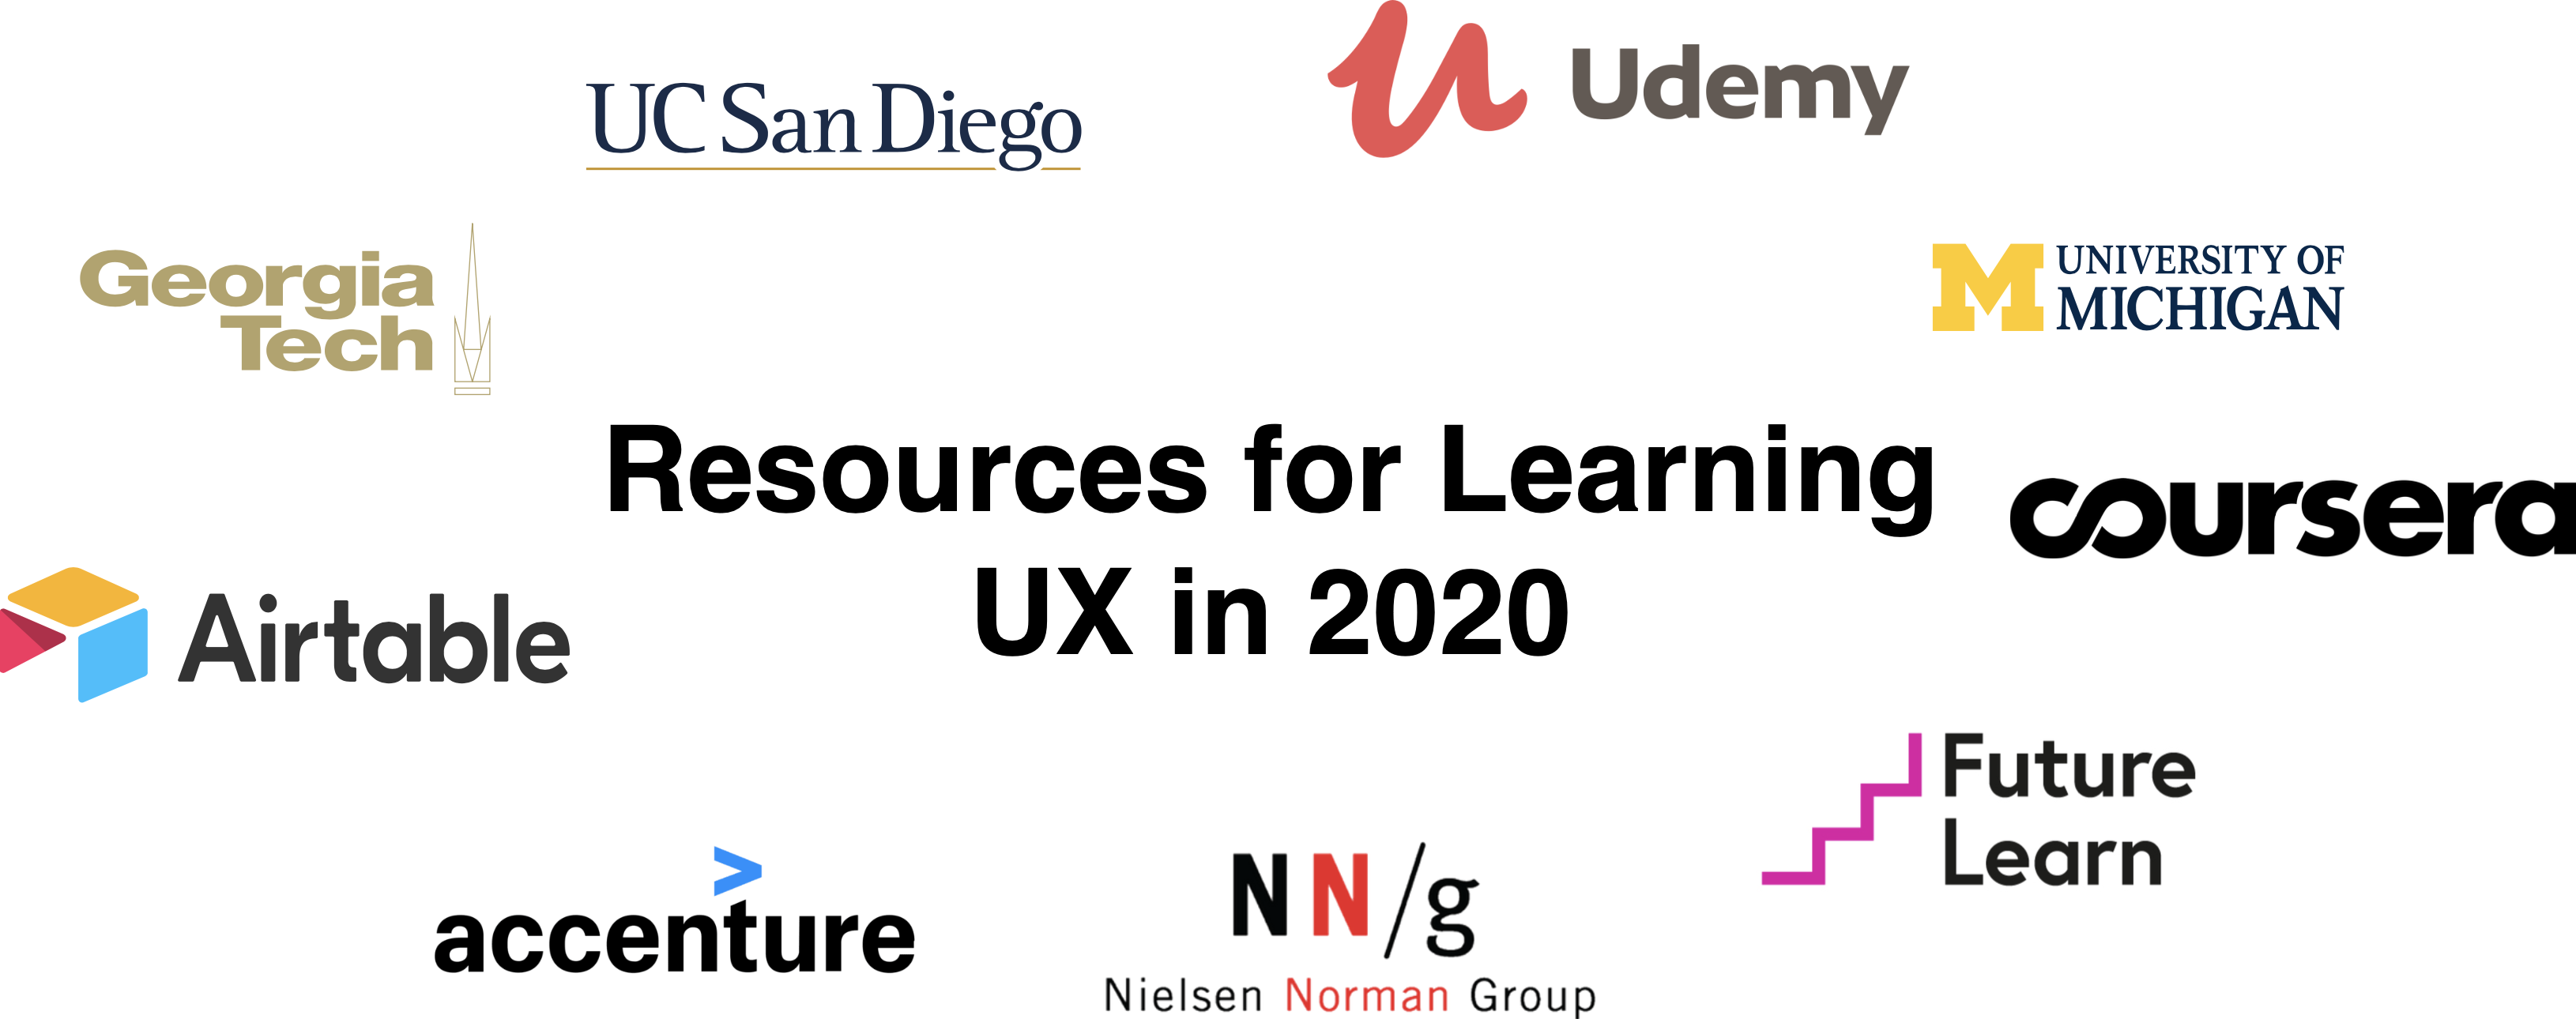 Resources For Learning Ux In 2020 By Mitchell Wakefield Ux Planet